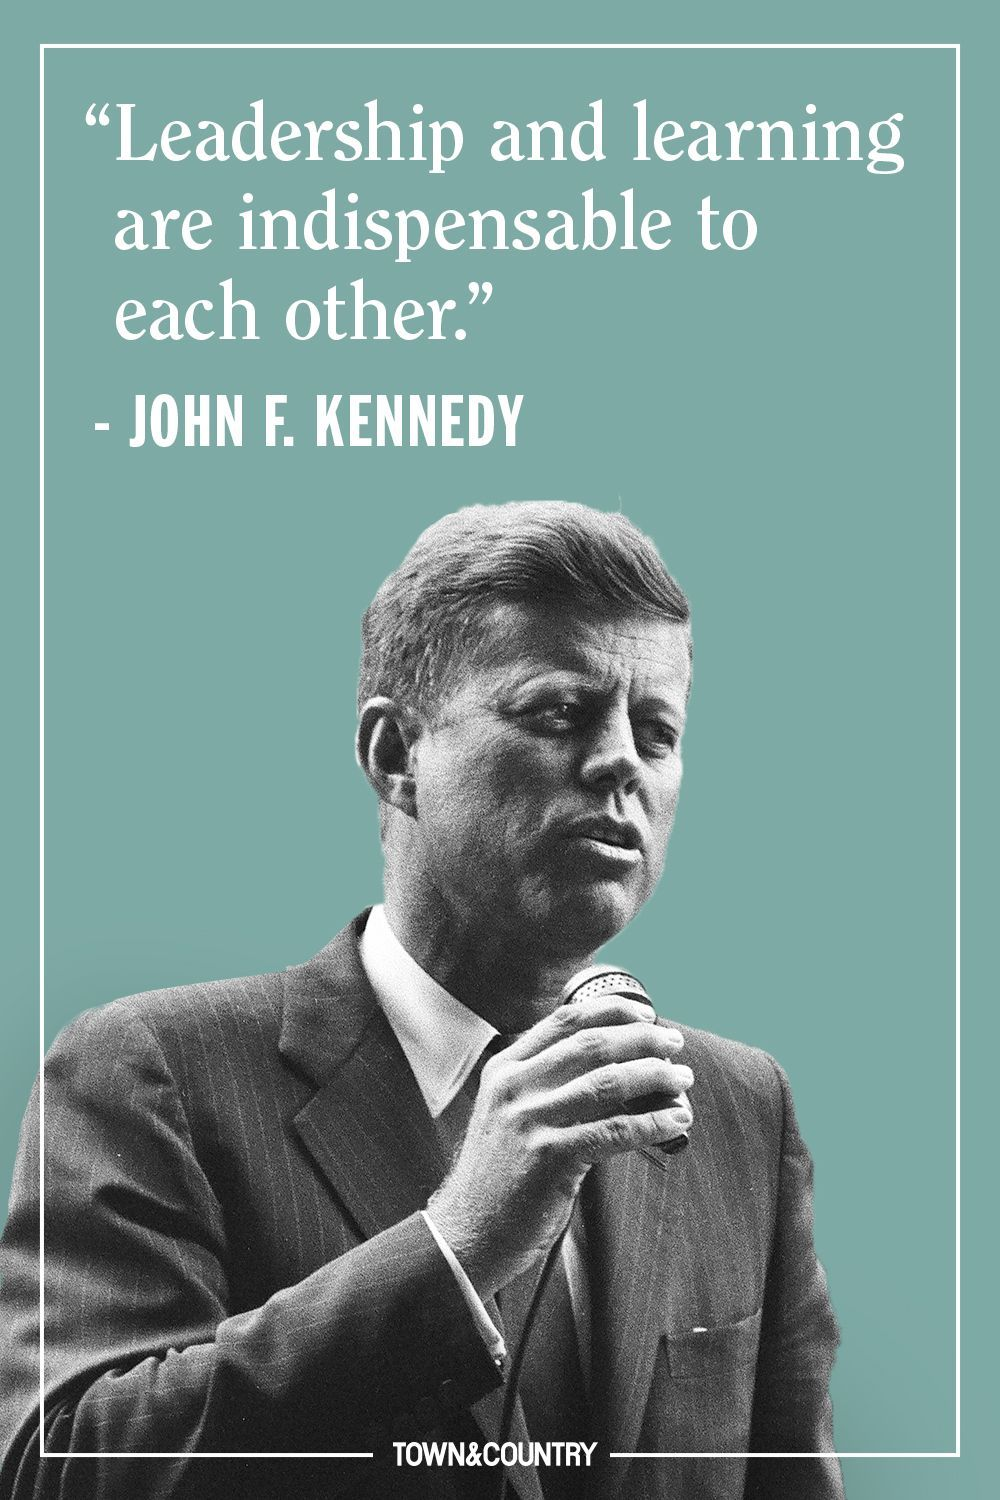 Jfk Quotes Pleasing 12 Jfk Quotes That Prove His Wisdom Is As Legendary As His